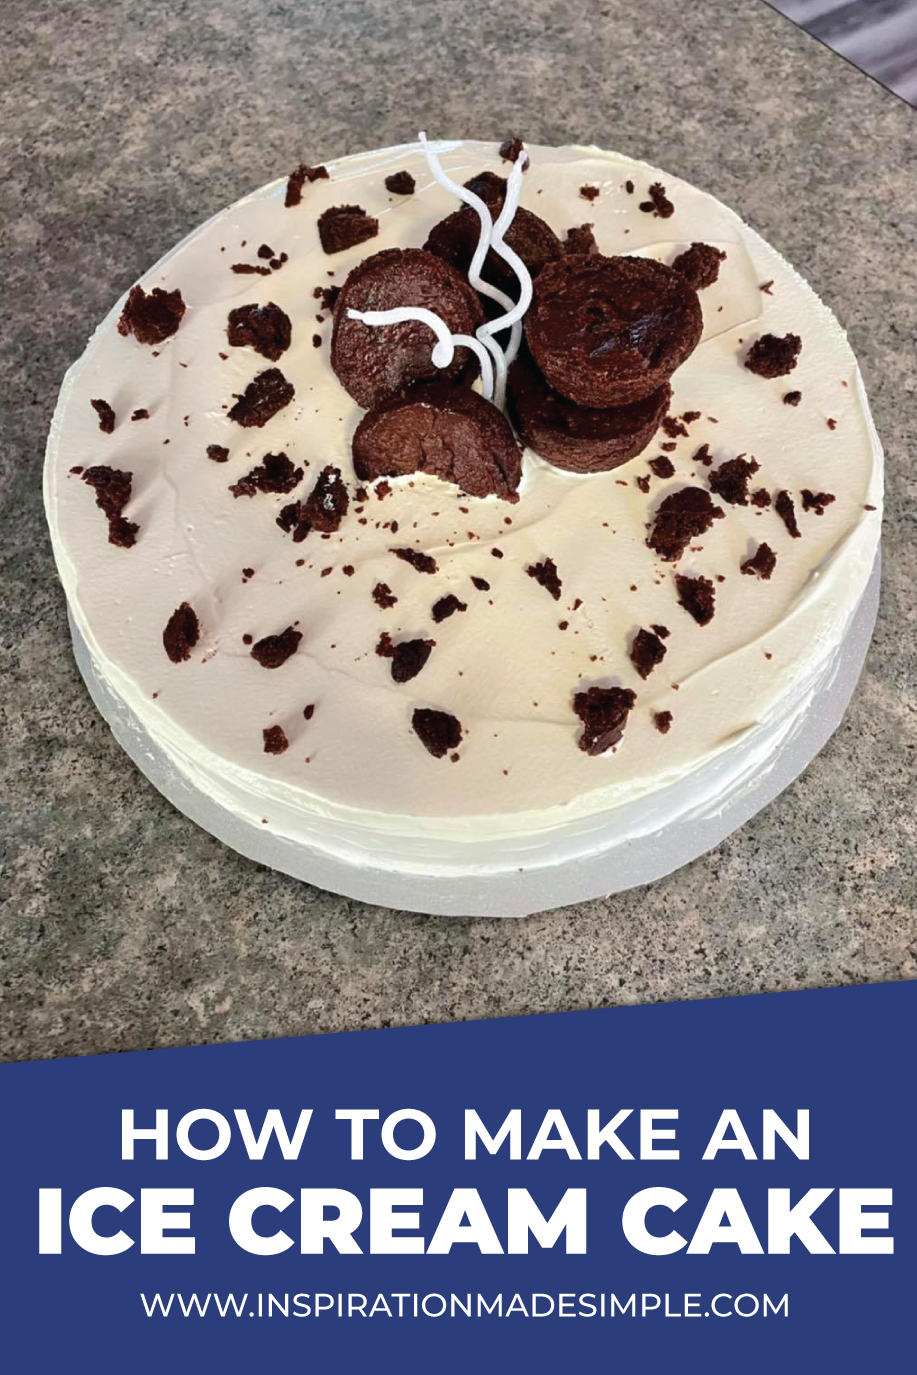 How to make an ice cream cake with this simple recipe